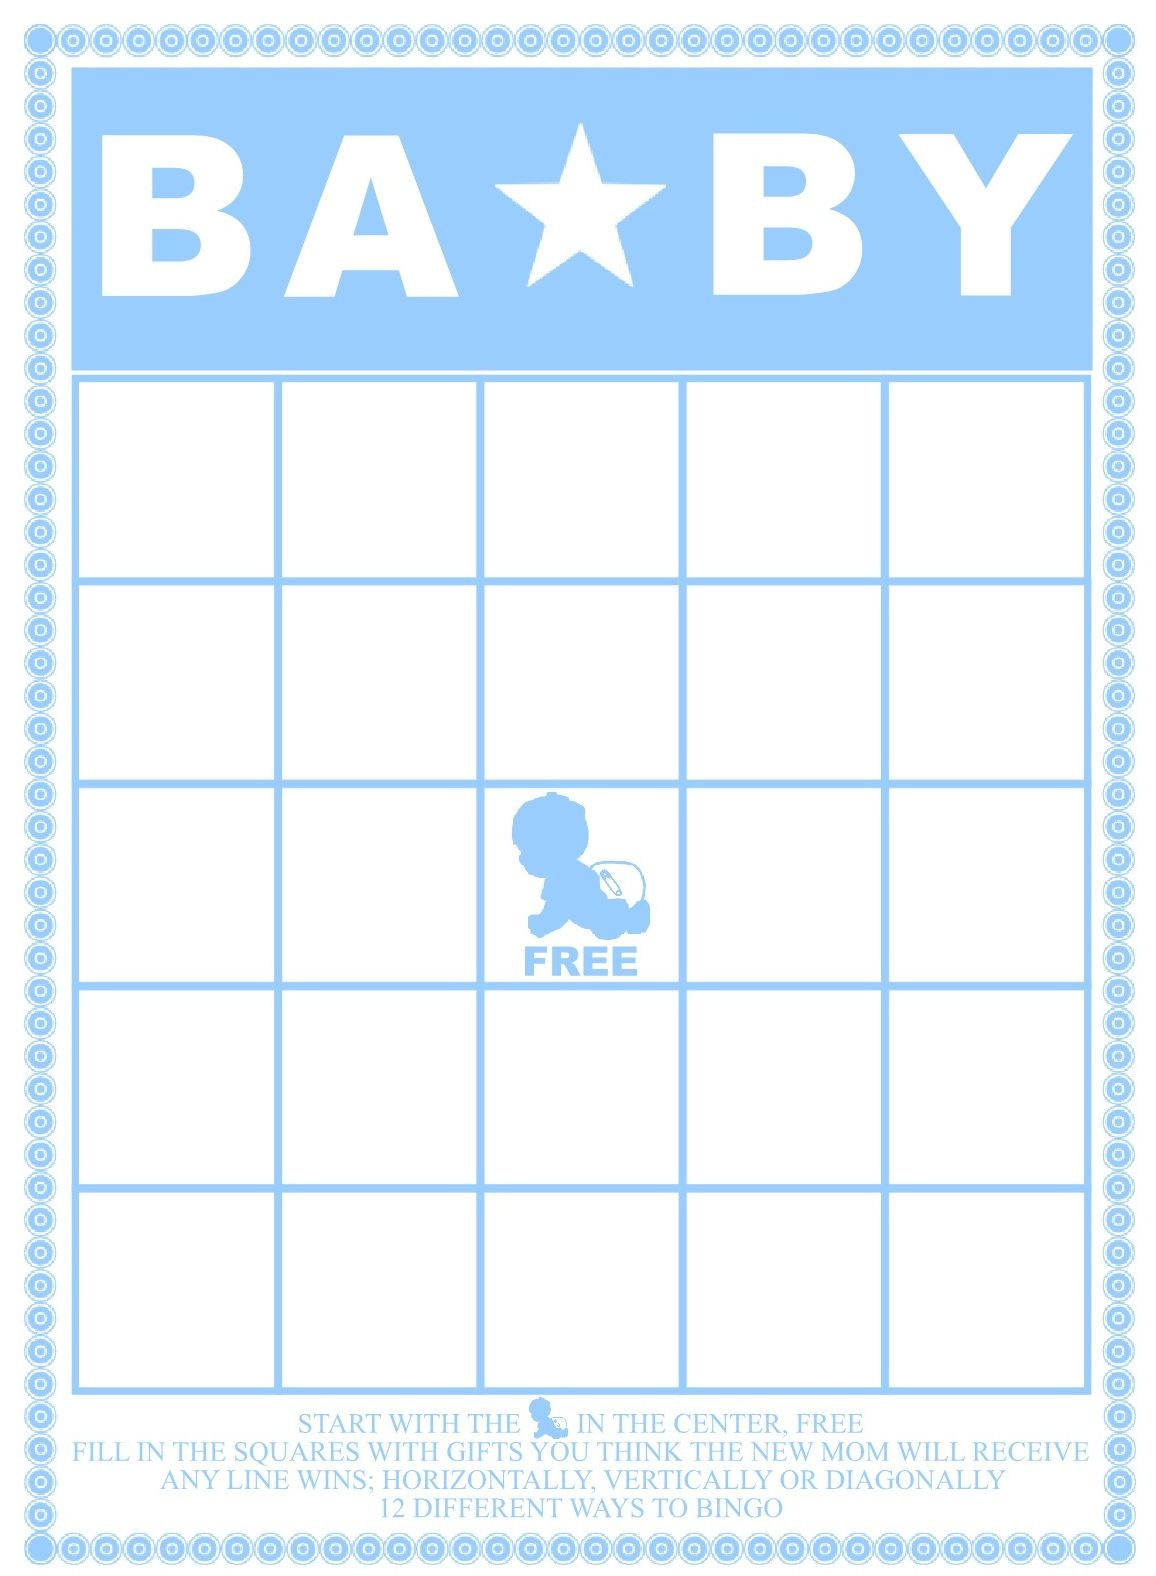 50 Free Printable Baby Bingo Cards (74+ Images In Collection) Page 1 - 50 Free Printable Baby Bingo Cards